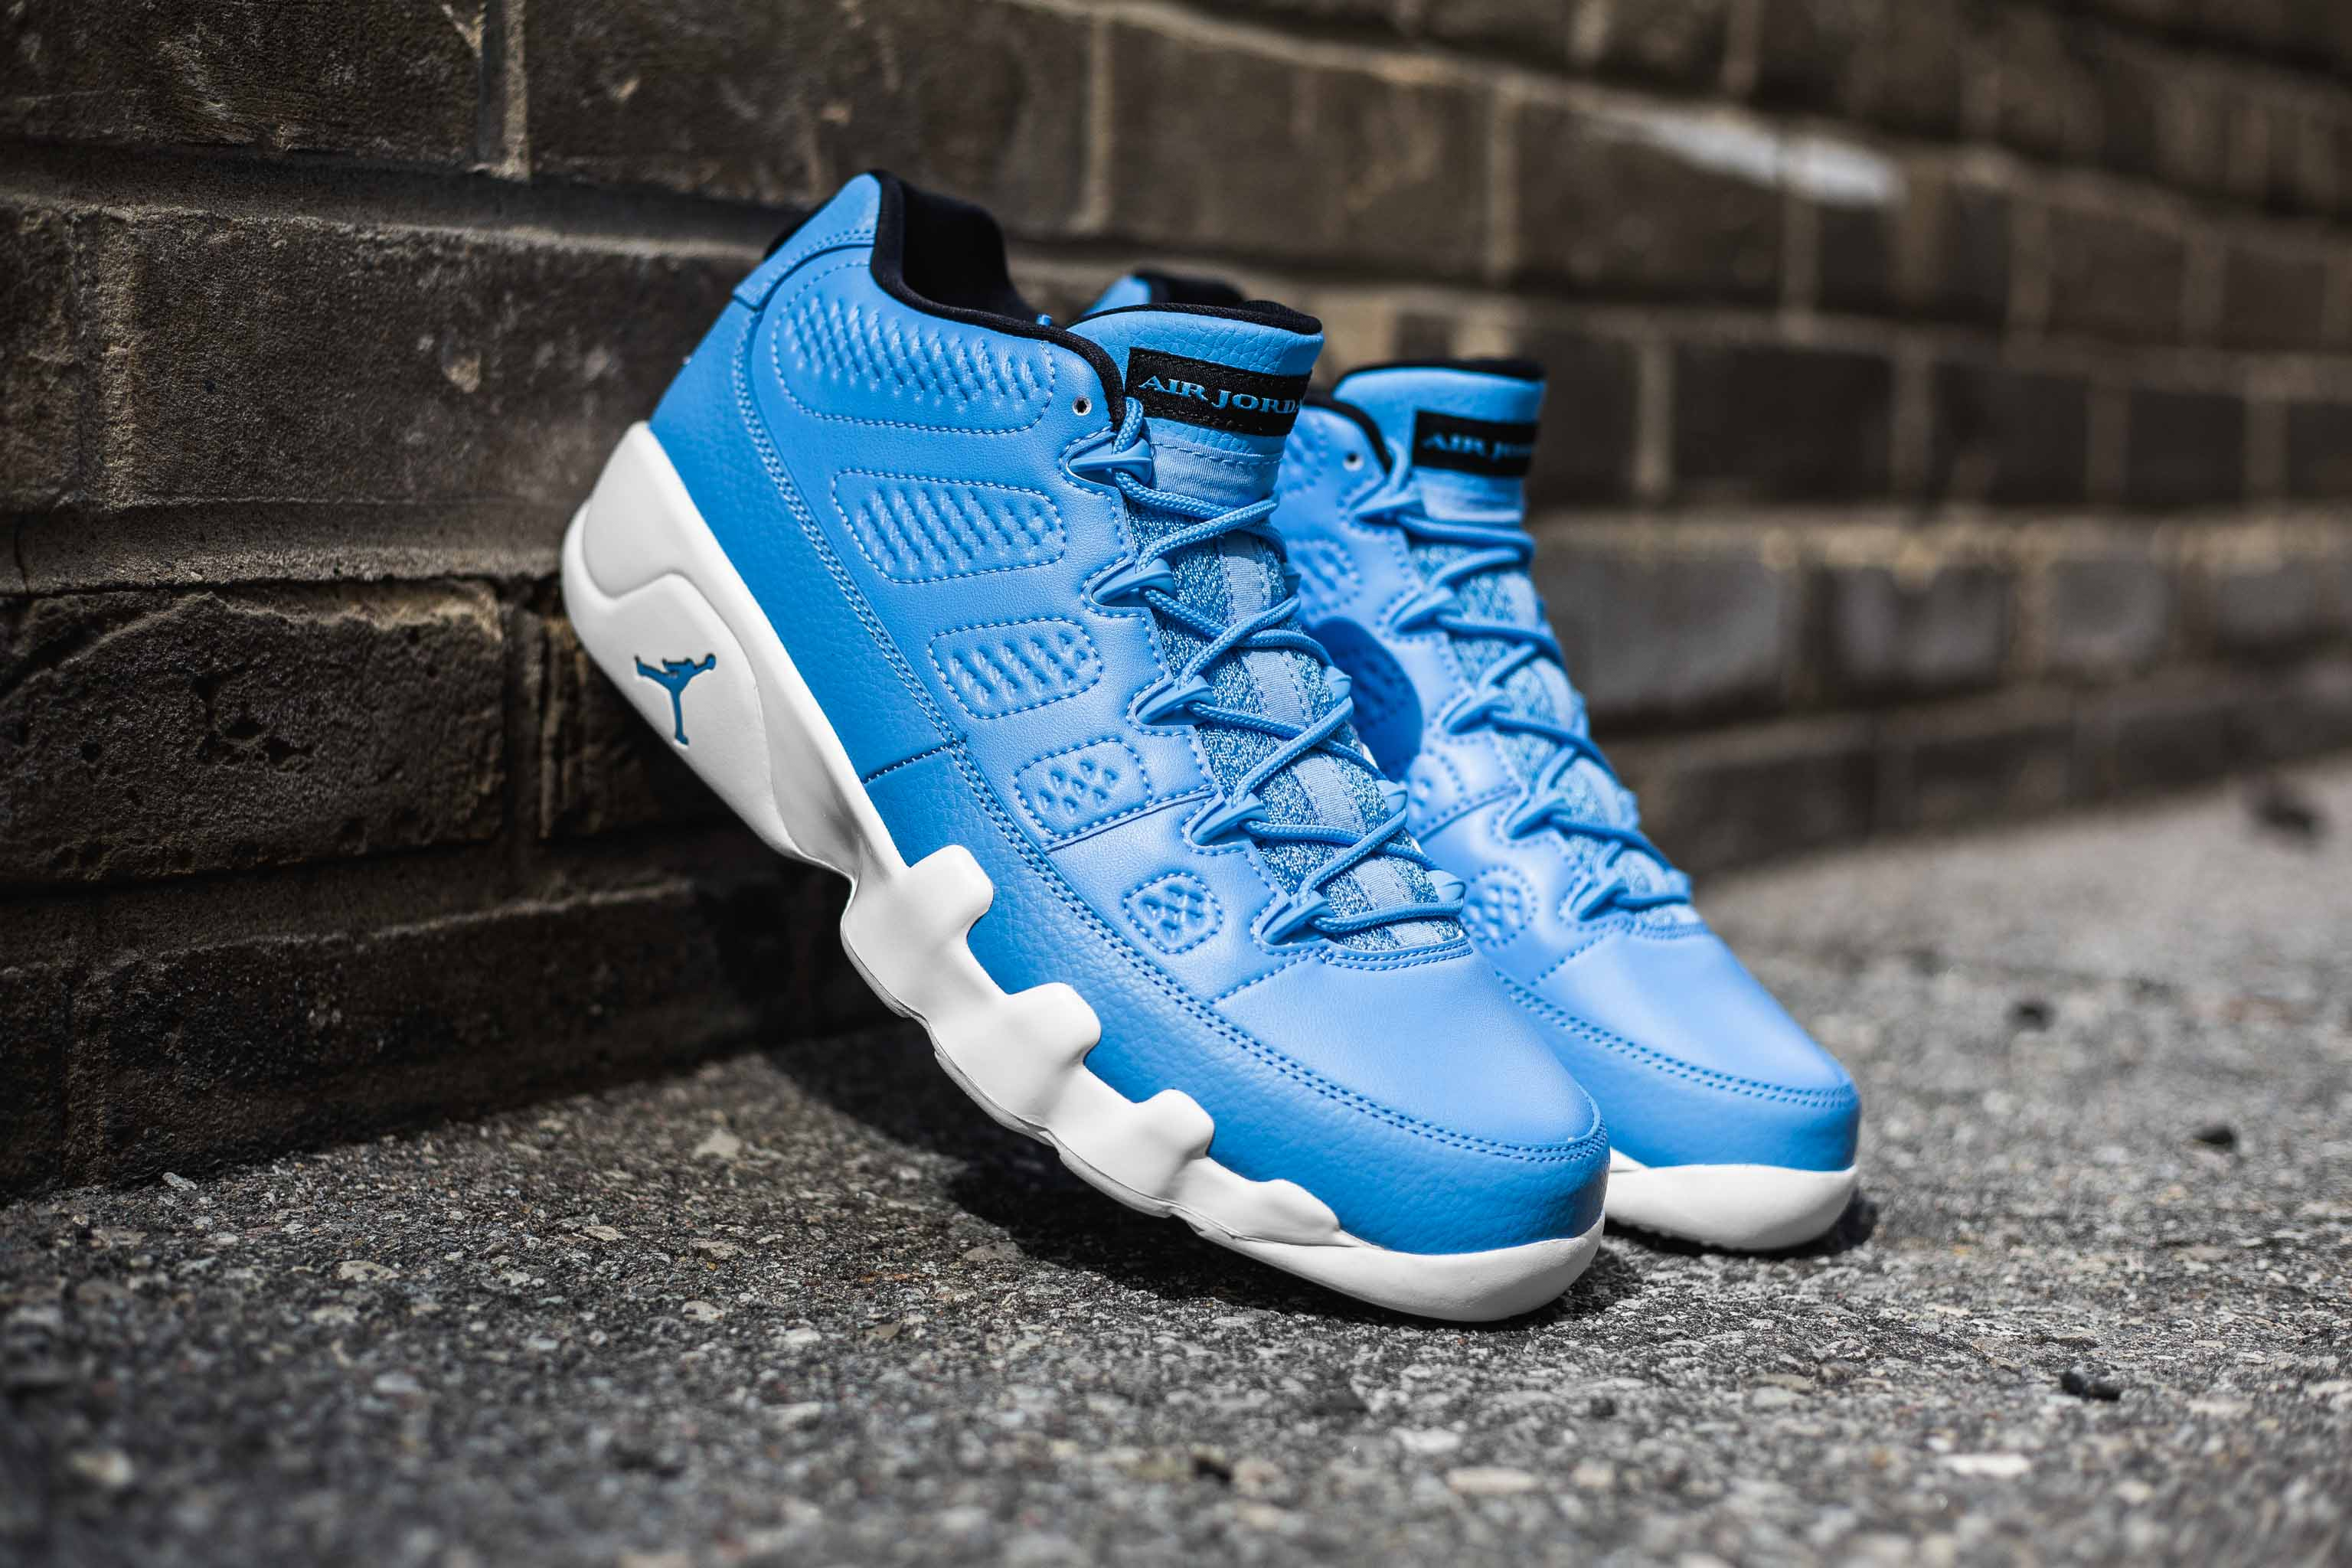 pretty nice cca50 cae4b The Air Jordan 9 Retro Low gets a powder blue makeover as a nod to his  Airness  roots in North Carolina. This pair features a university blue  leather upper ...